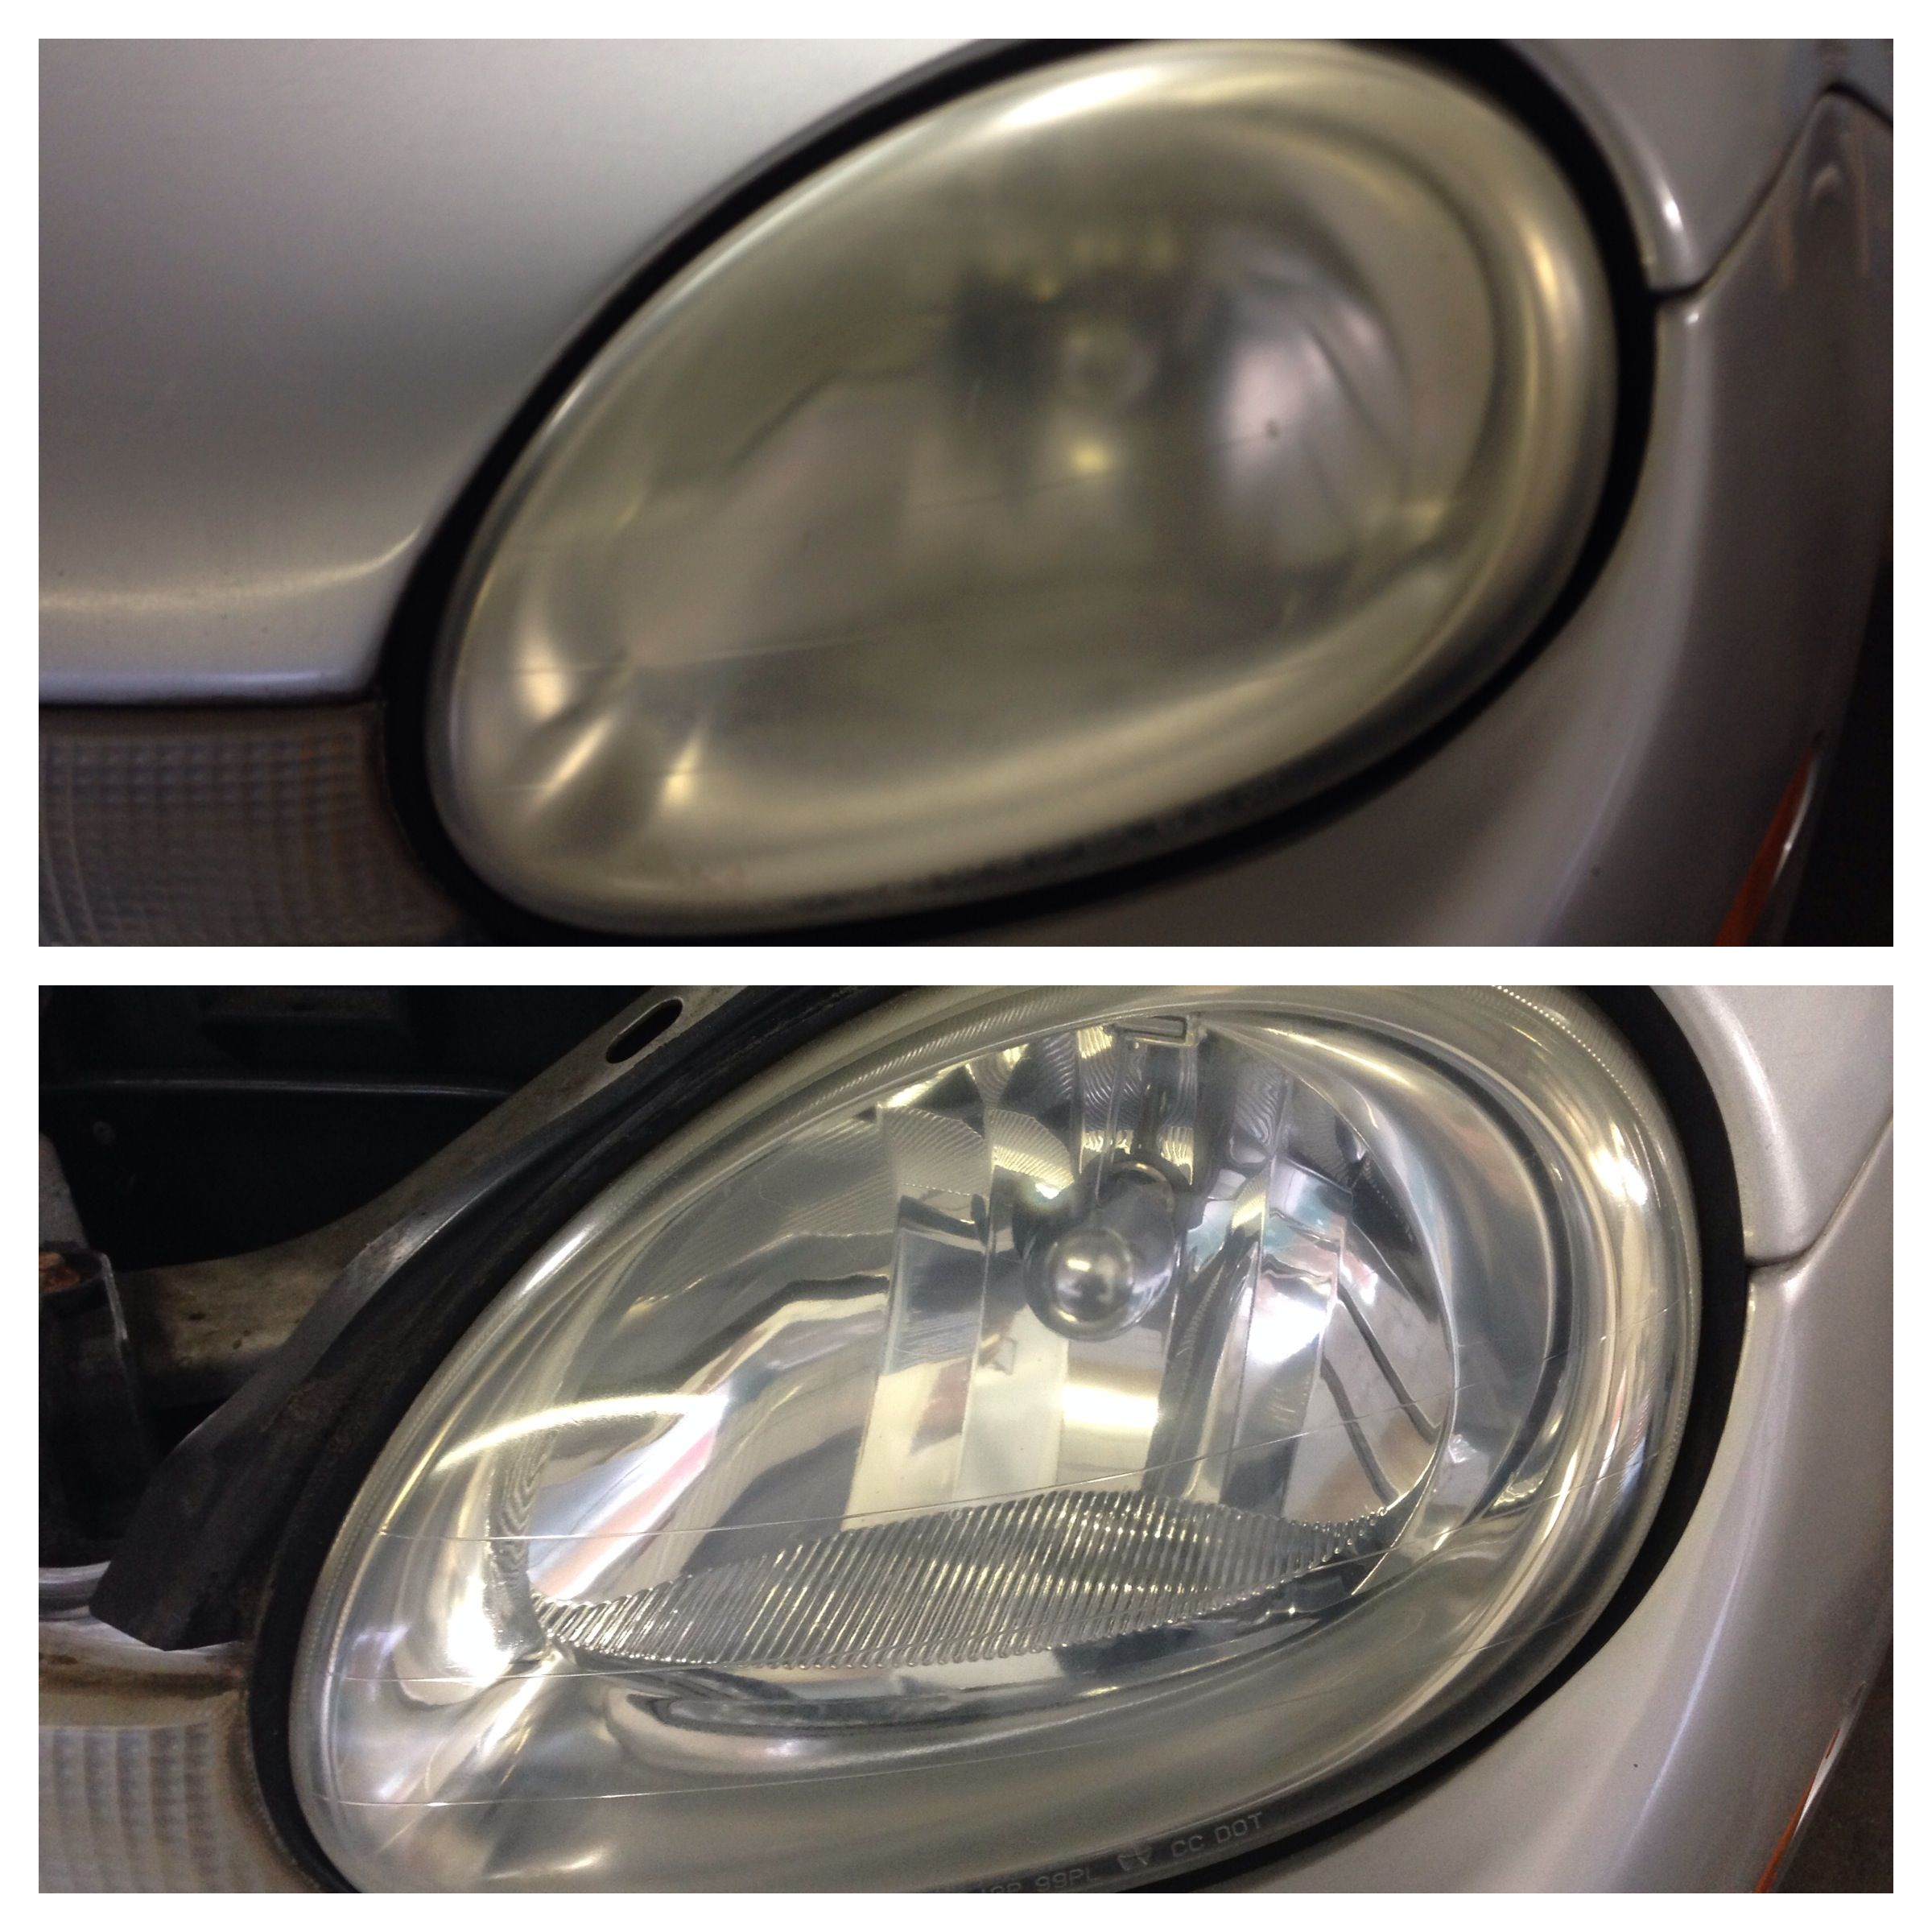 We now offer Headlight Restoration, Paintless Dent Removal